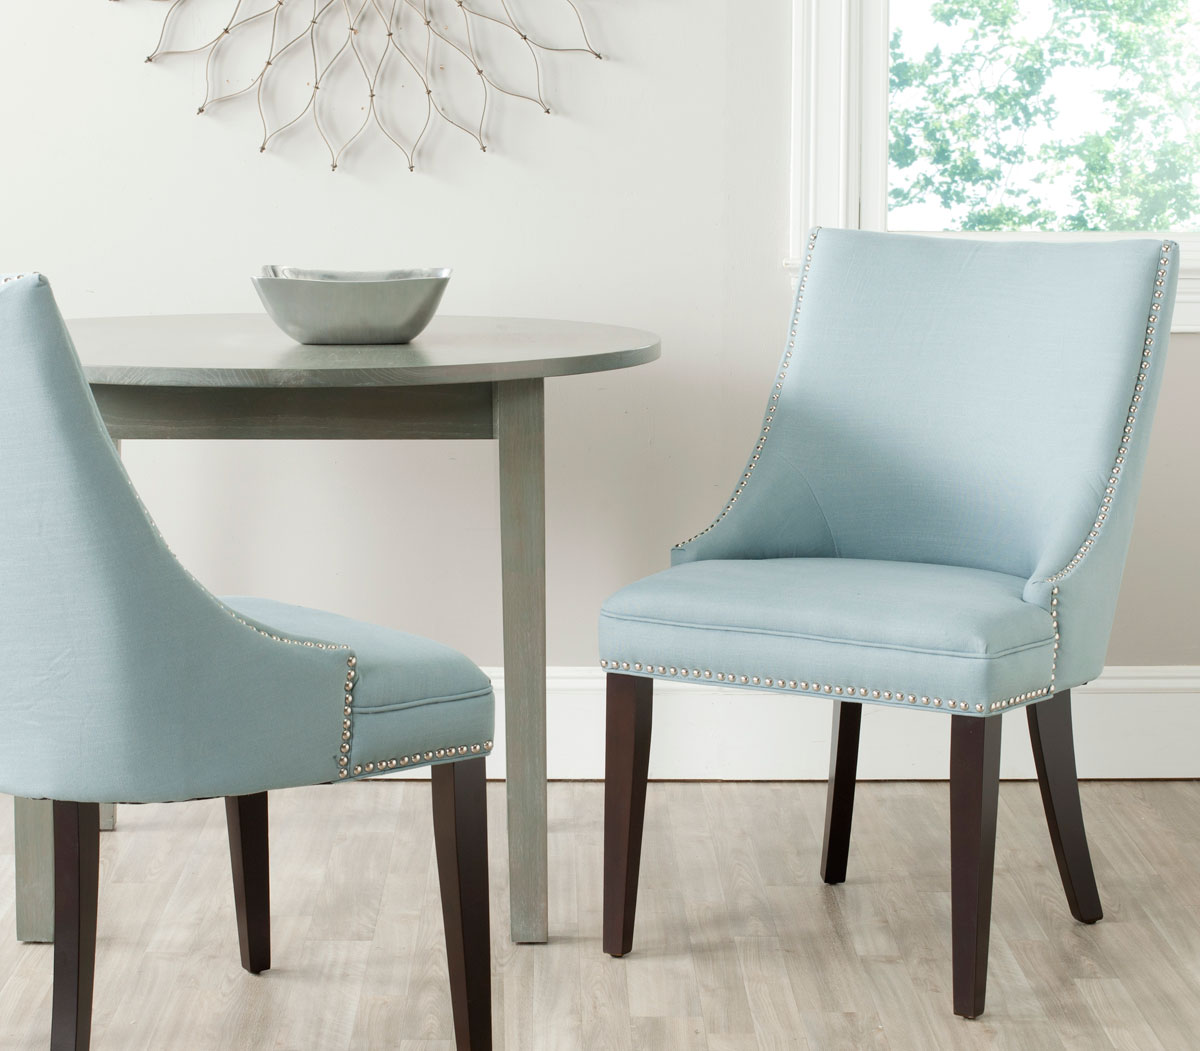 Safavieh Dining Chairs: MCR4715A-SET2 Dining Chairs